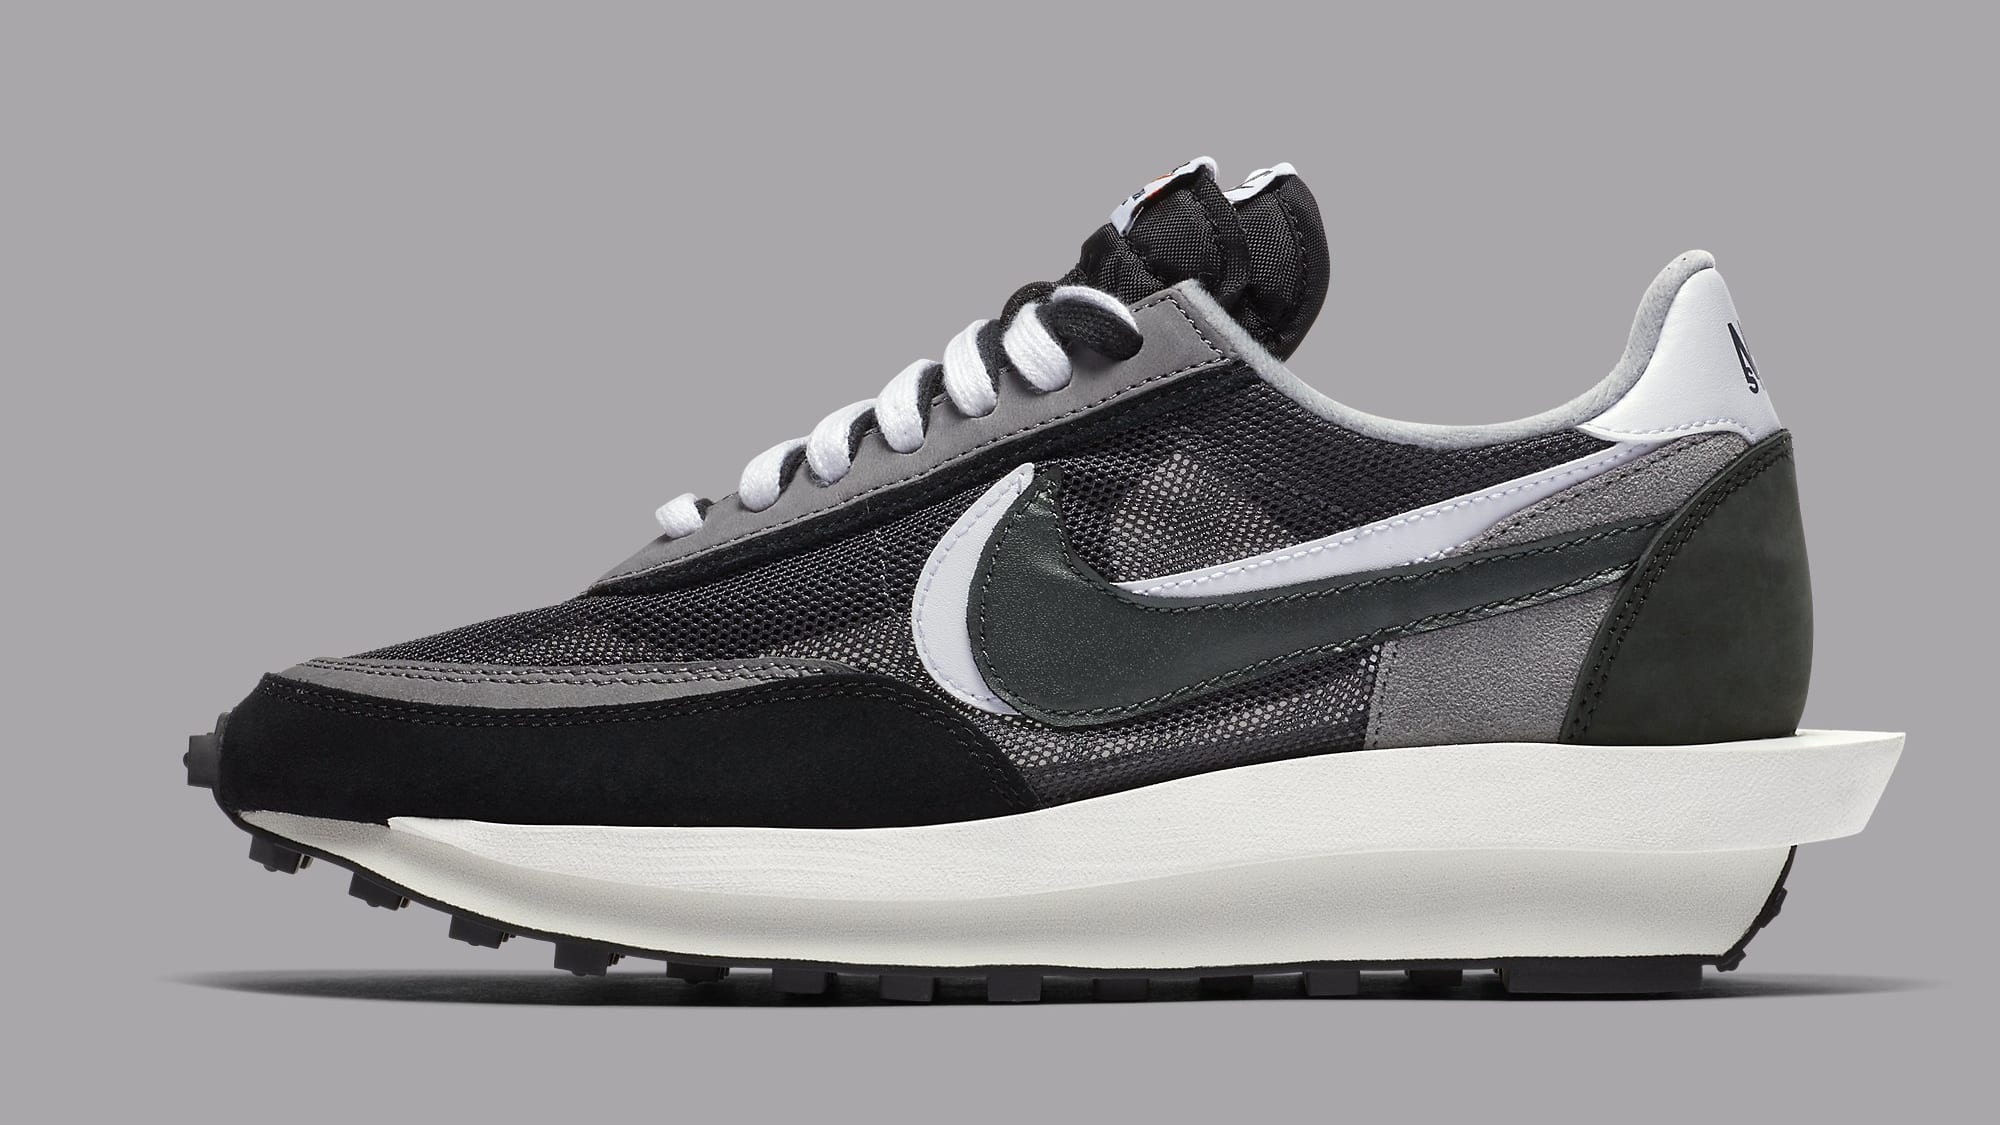 Sacai x Nike LDWaffle Black Anthracite Release Date BV0073-001 Profile